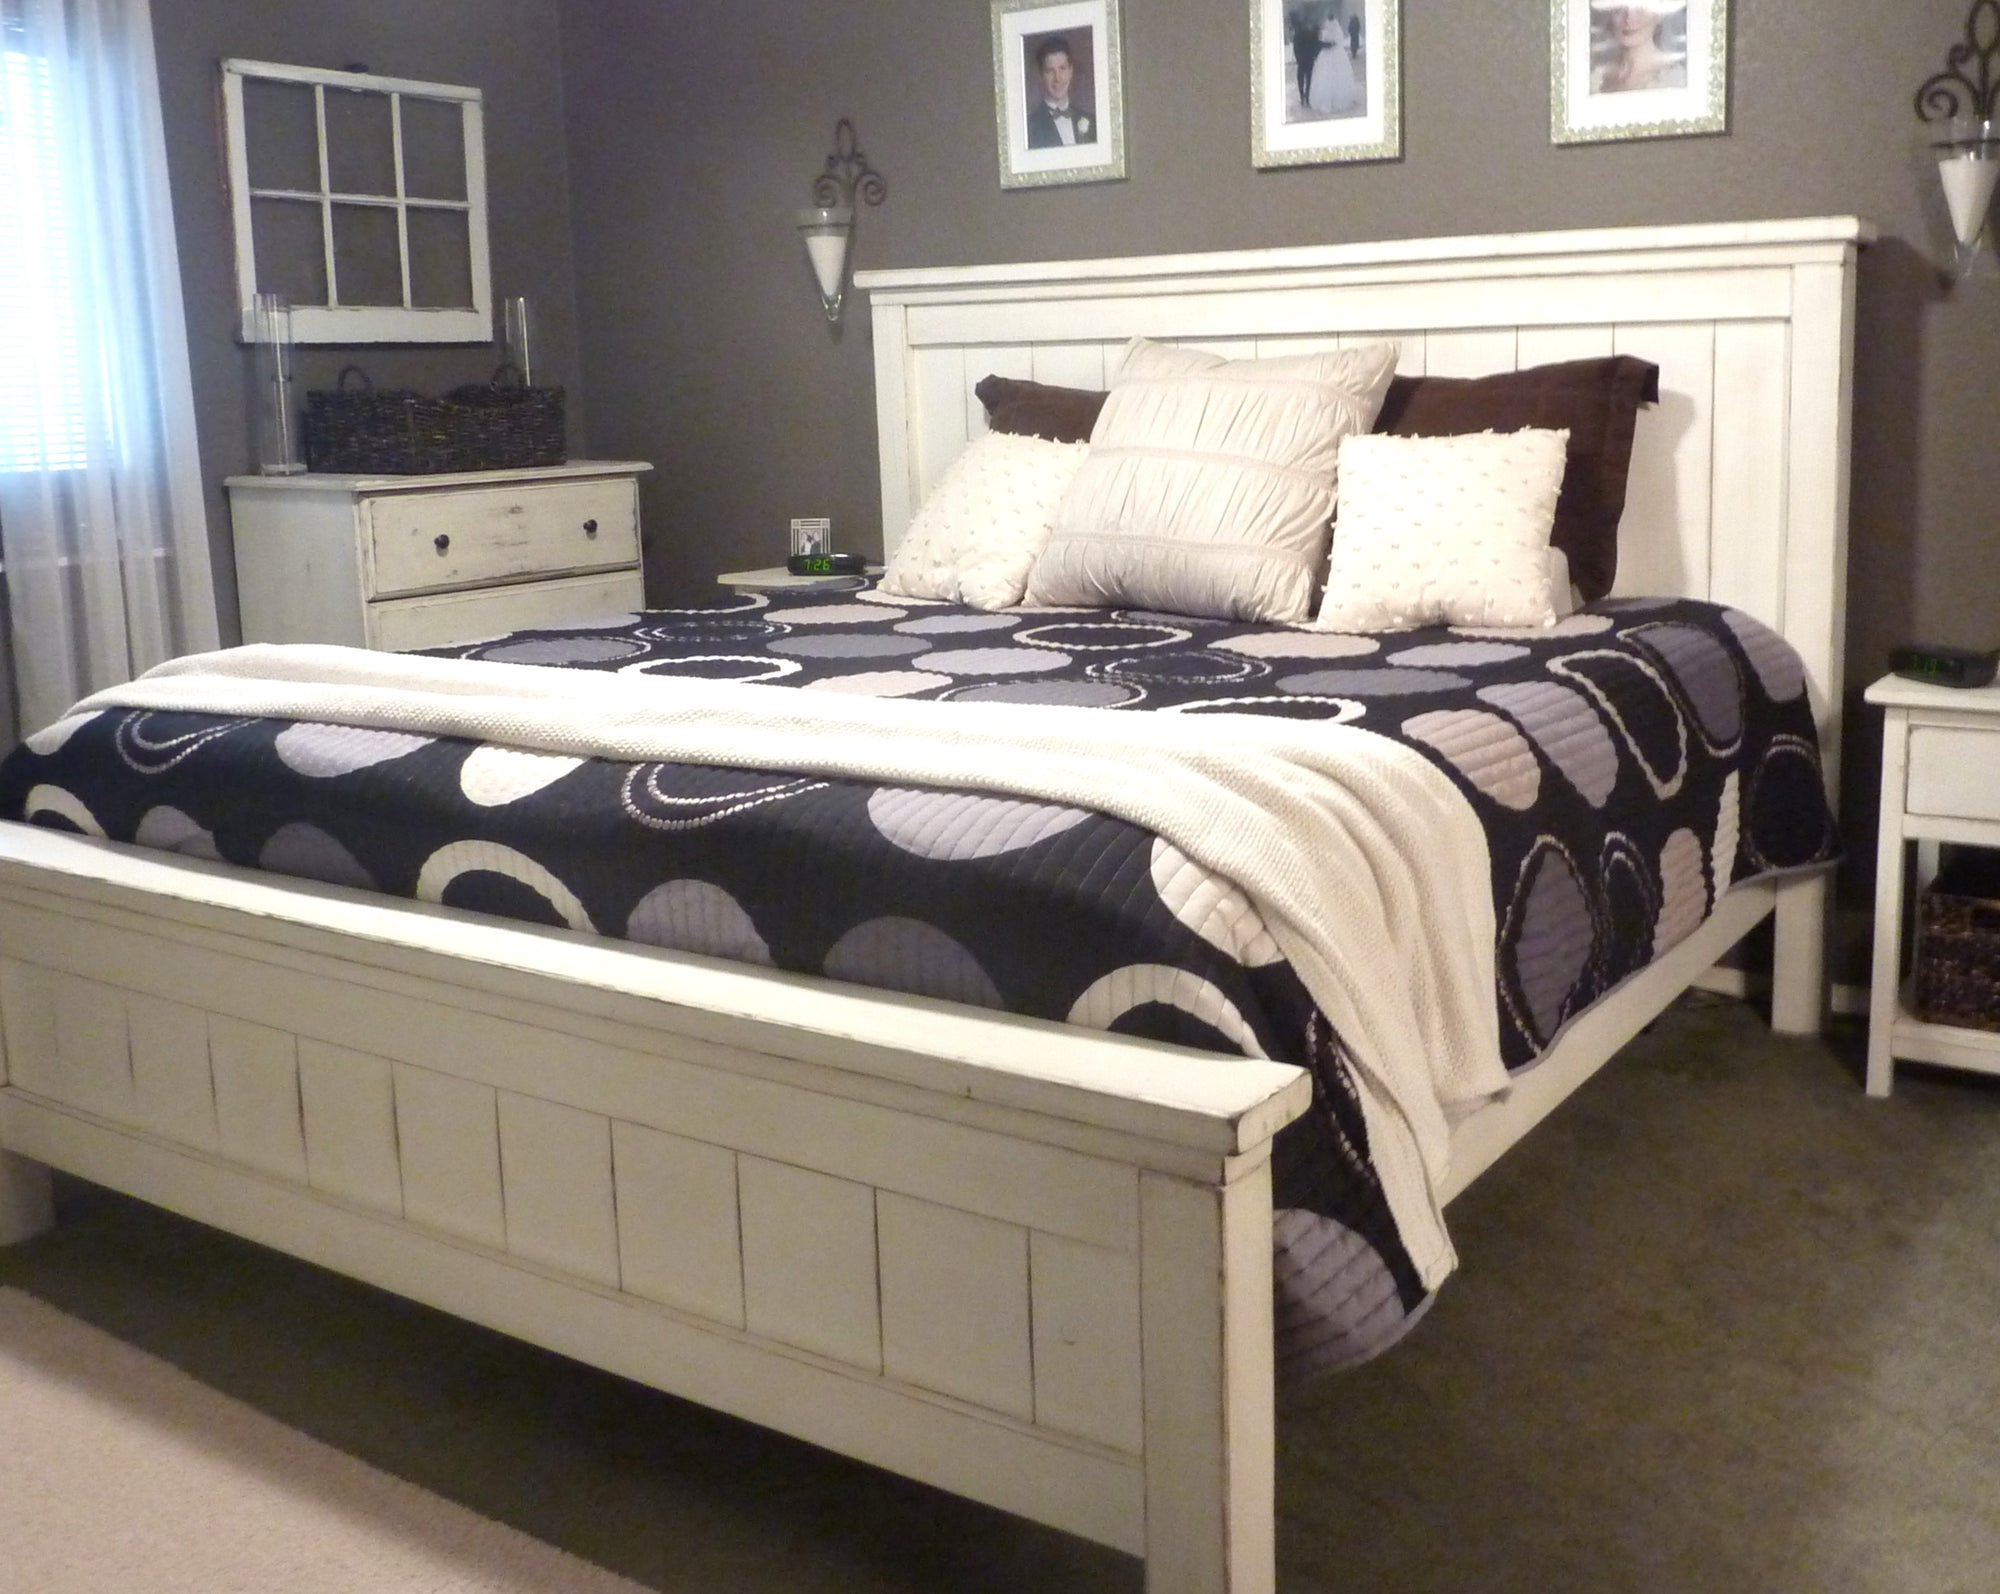 Shop hawkinswoodshop.com for solid wood & metal modern, traditional, contemporary, industrial, custom, rustic, and farmhouse furniture including our Made-to-Order Custom Rustic Farmhouse Beds - King Size.  Enjoy free nationwide shipping, help with the fight against hunger in the US, and support a family owned and operated business that helps puts food on the table for folks in rural Northern California.